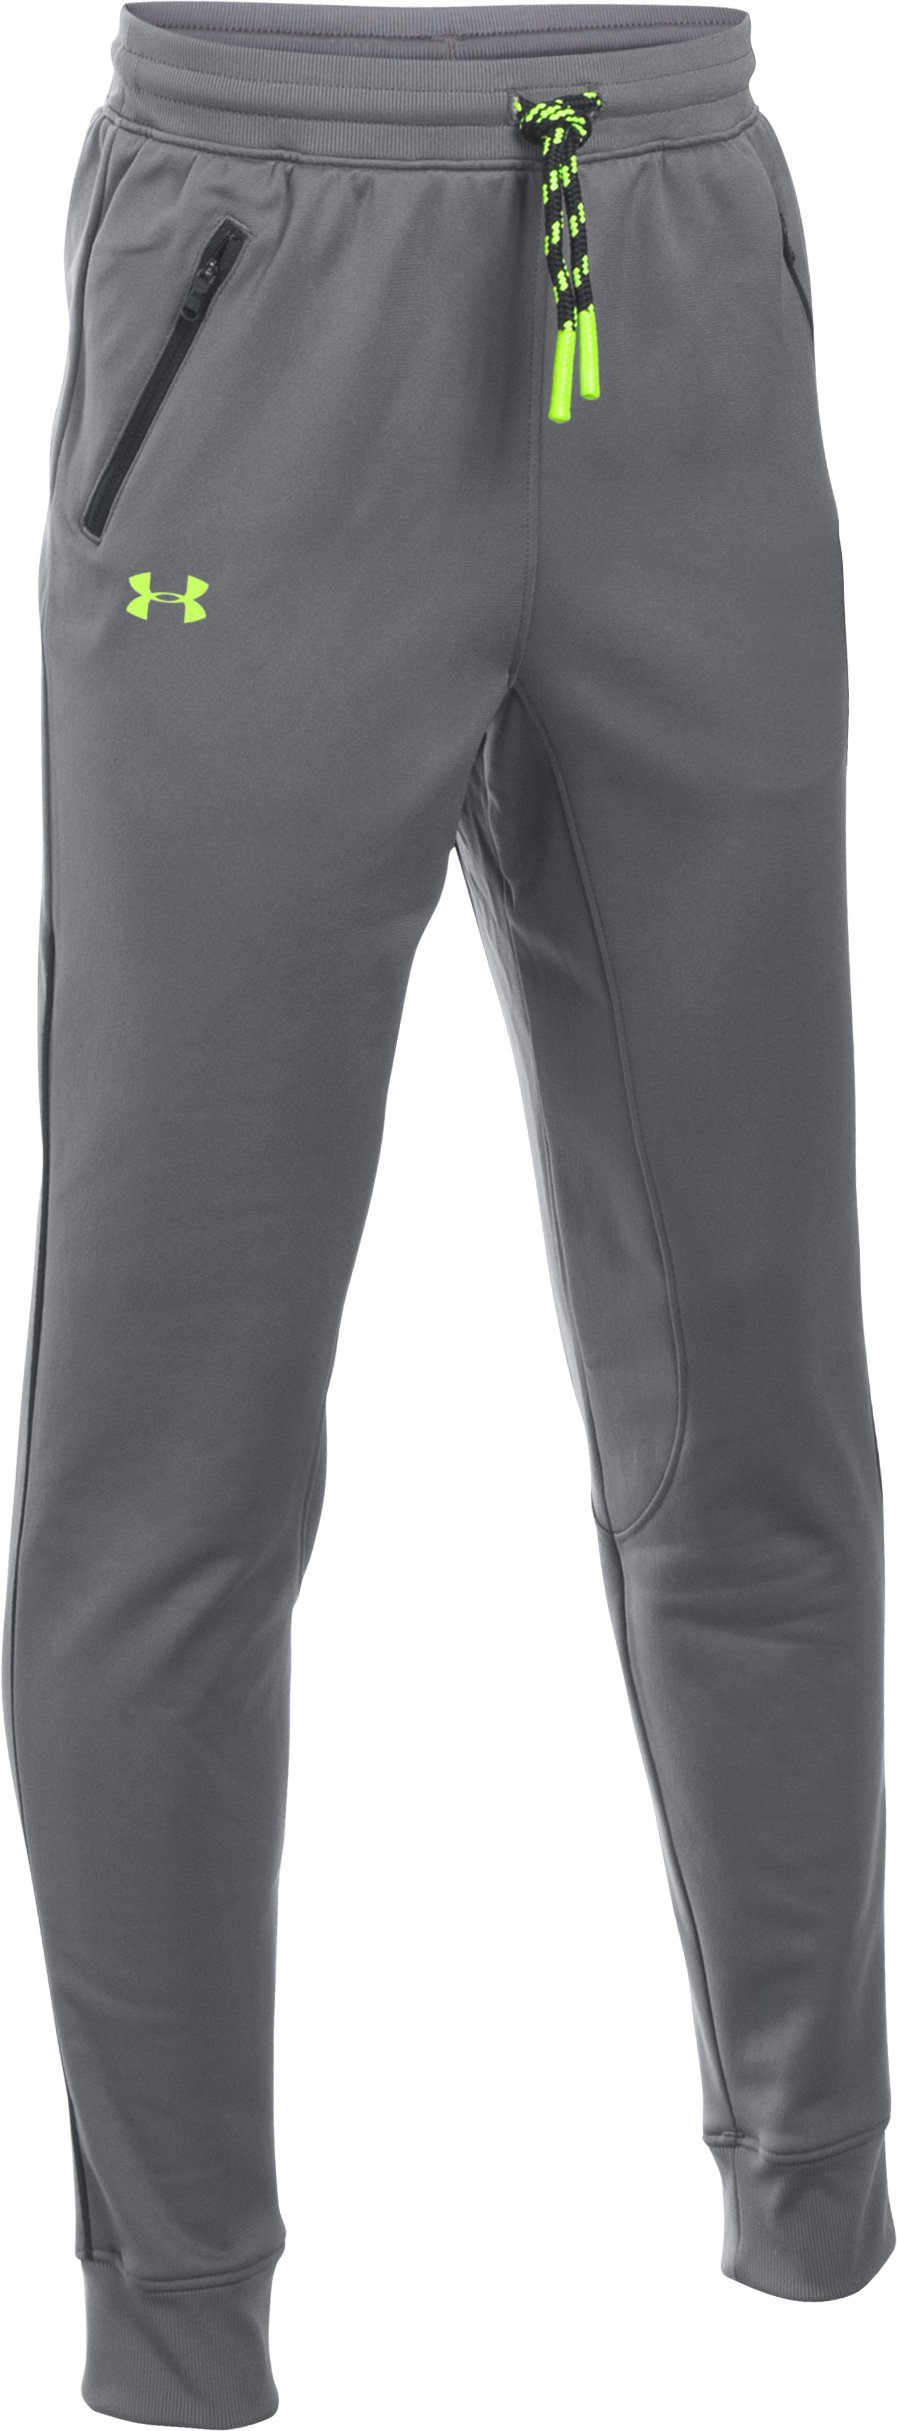 graphite pants Boys' UA Pennant Tapered Pants My boy loves the pants....nice jogger...The jogger is very nice quality.